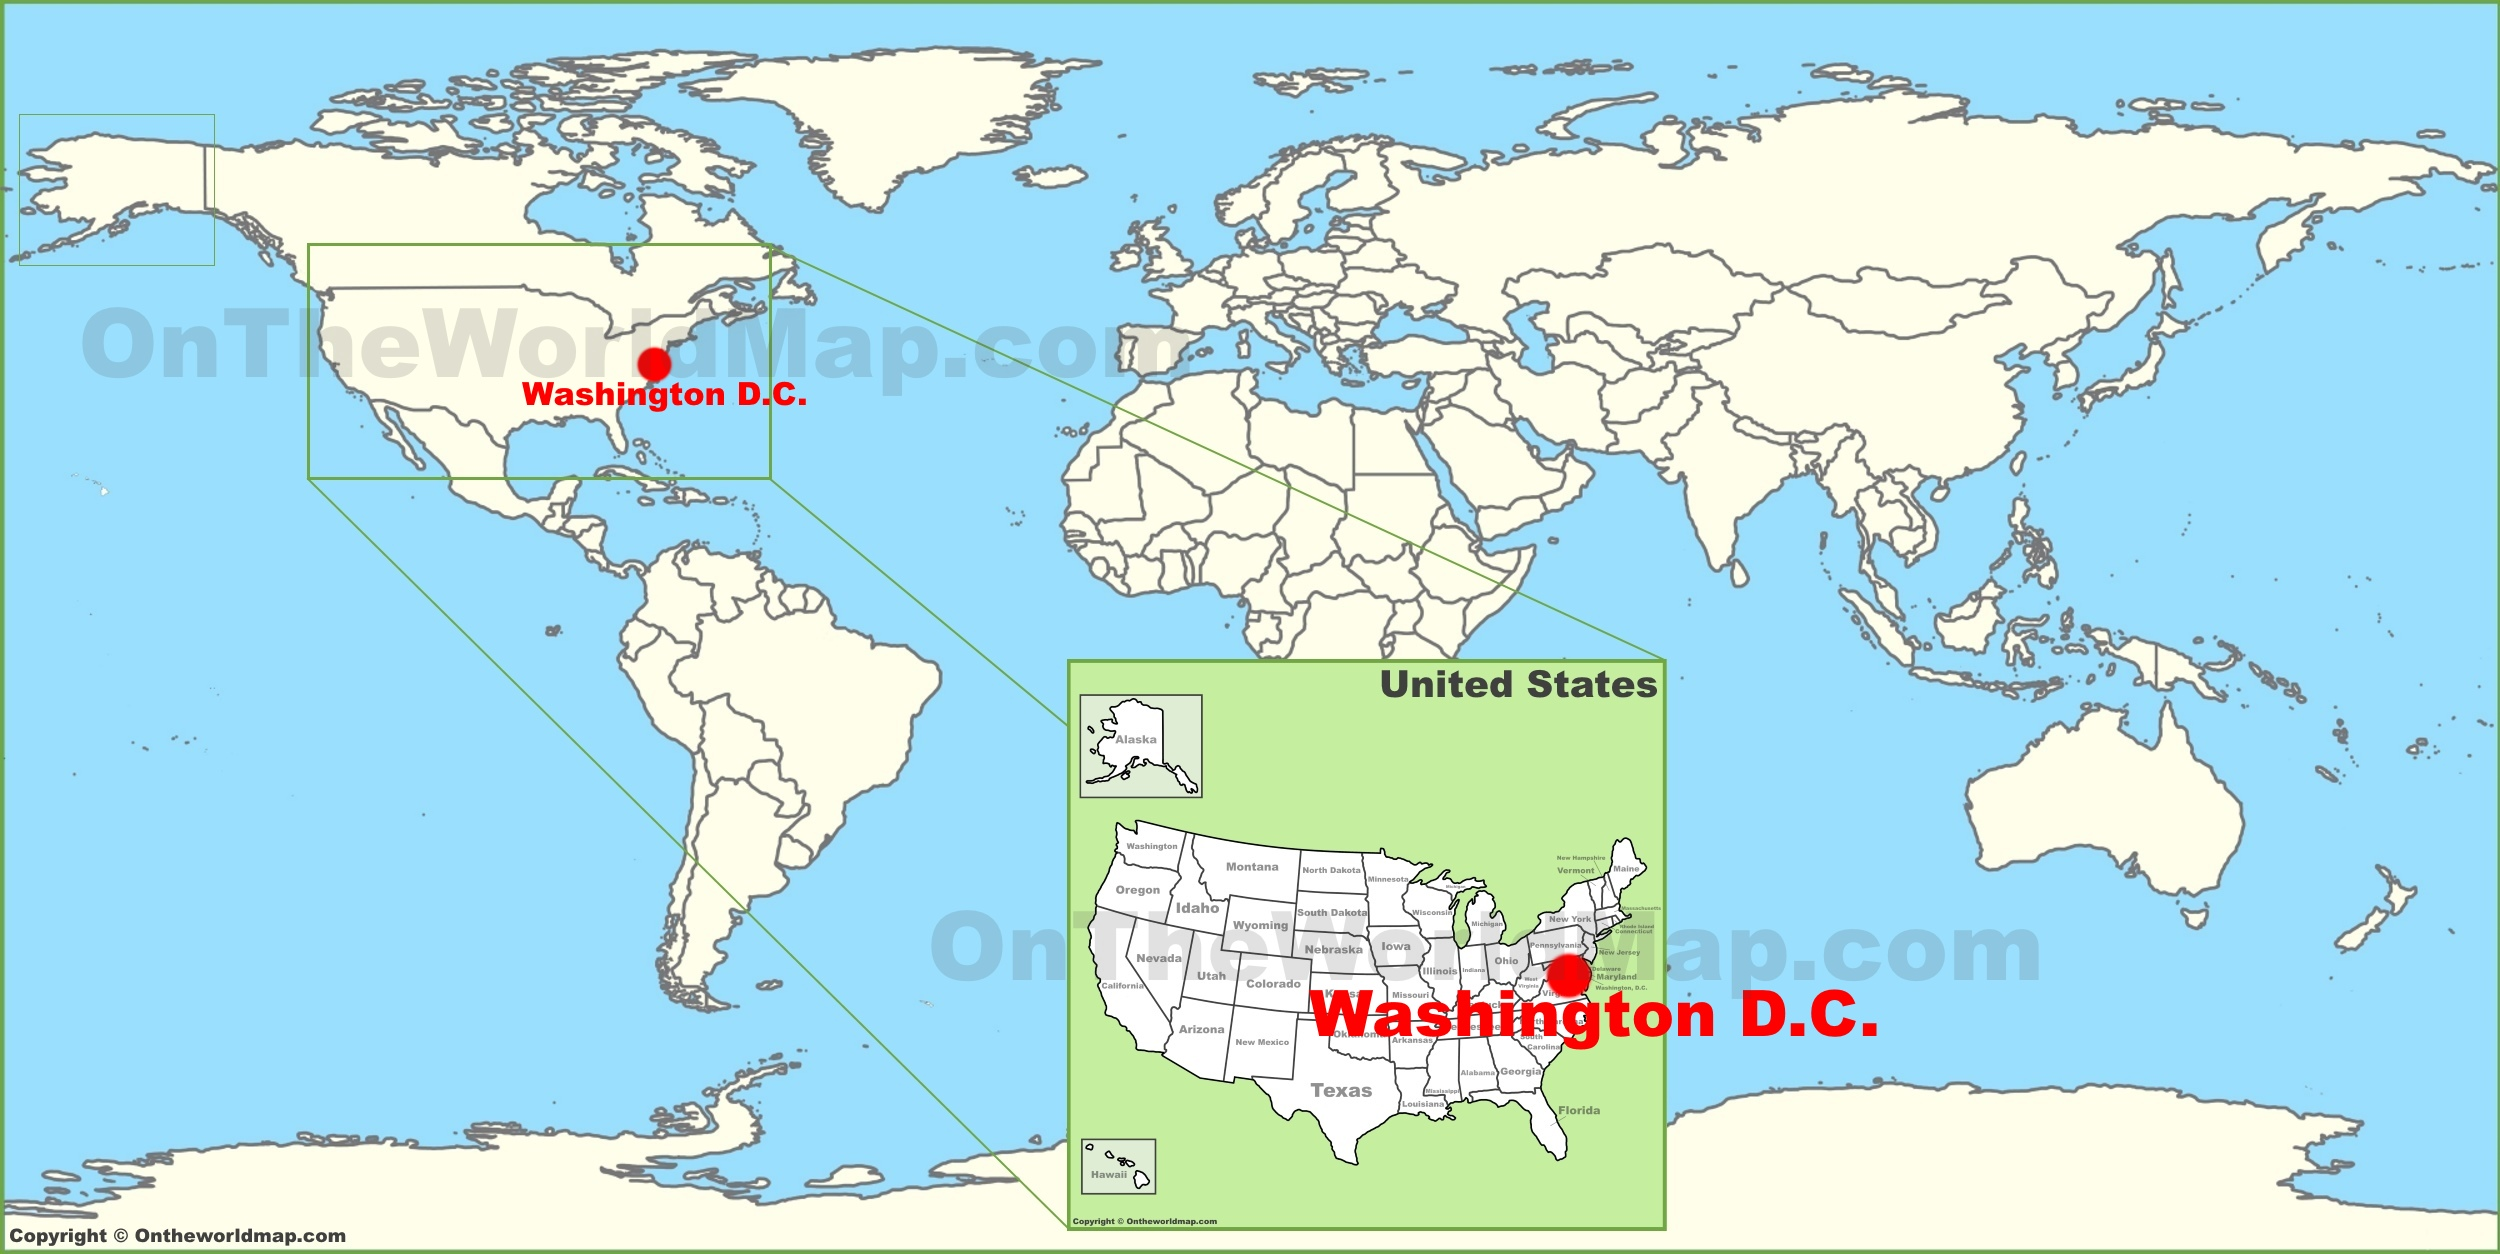 Washington DC on the World Map